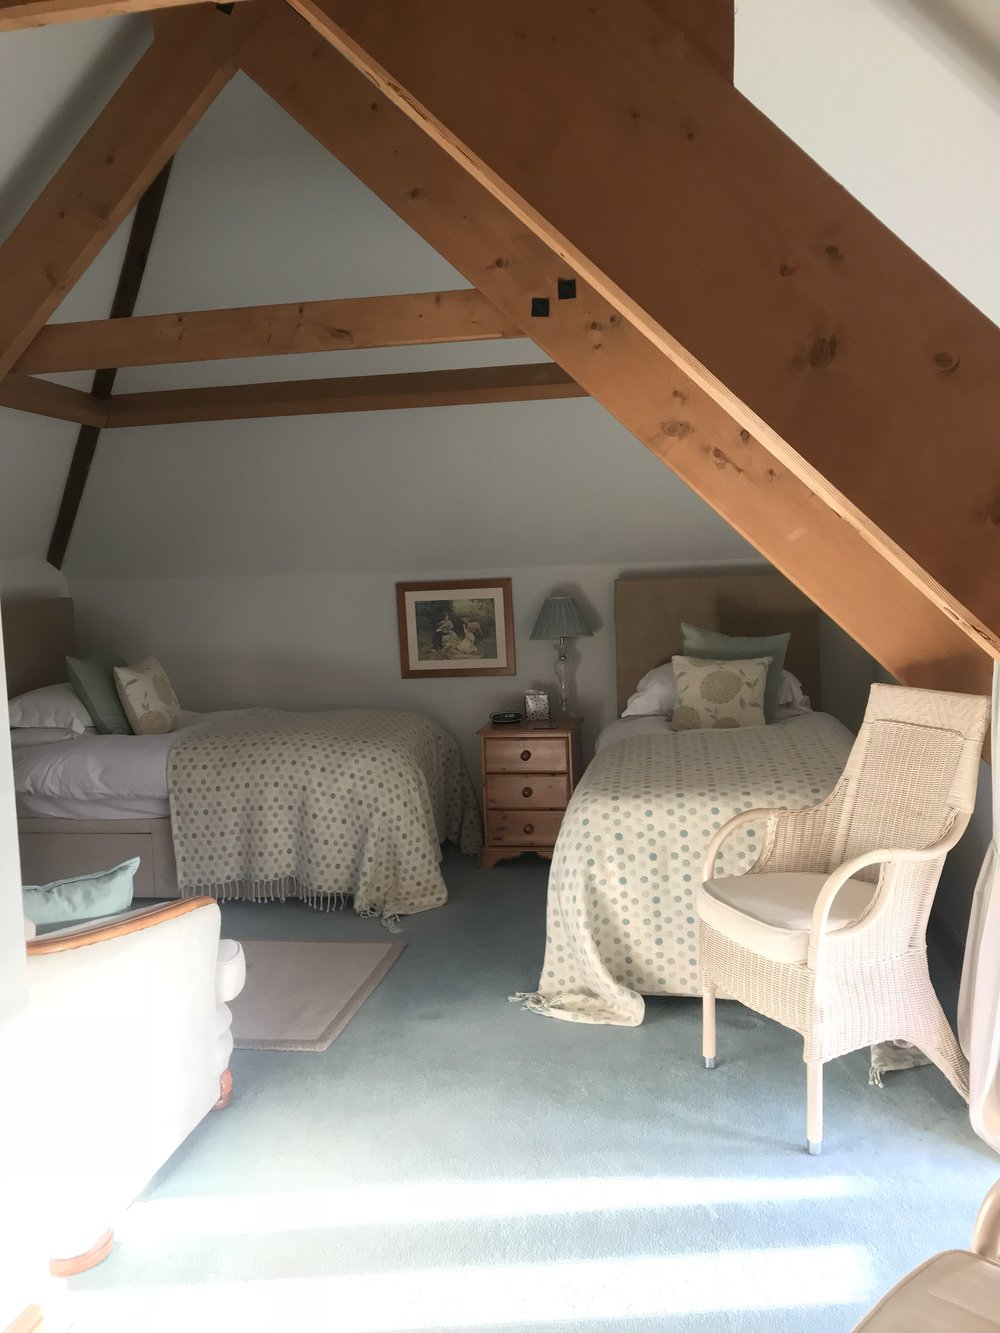 Cow Shippon Twin - The Cow Shippon twin room is cosy, yet spacious with wonderful beams, a sofa to relax on, an ensuite bathroom with a bath and shower over. The room, formerly a hay loft comes complete with a beverage tray, homemade biscuits and fresh flowers from the garden.